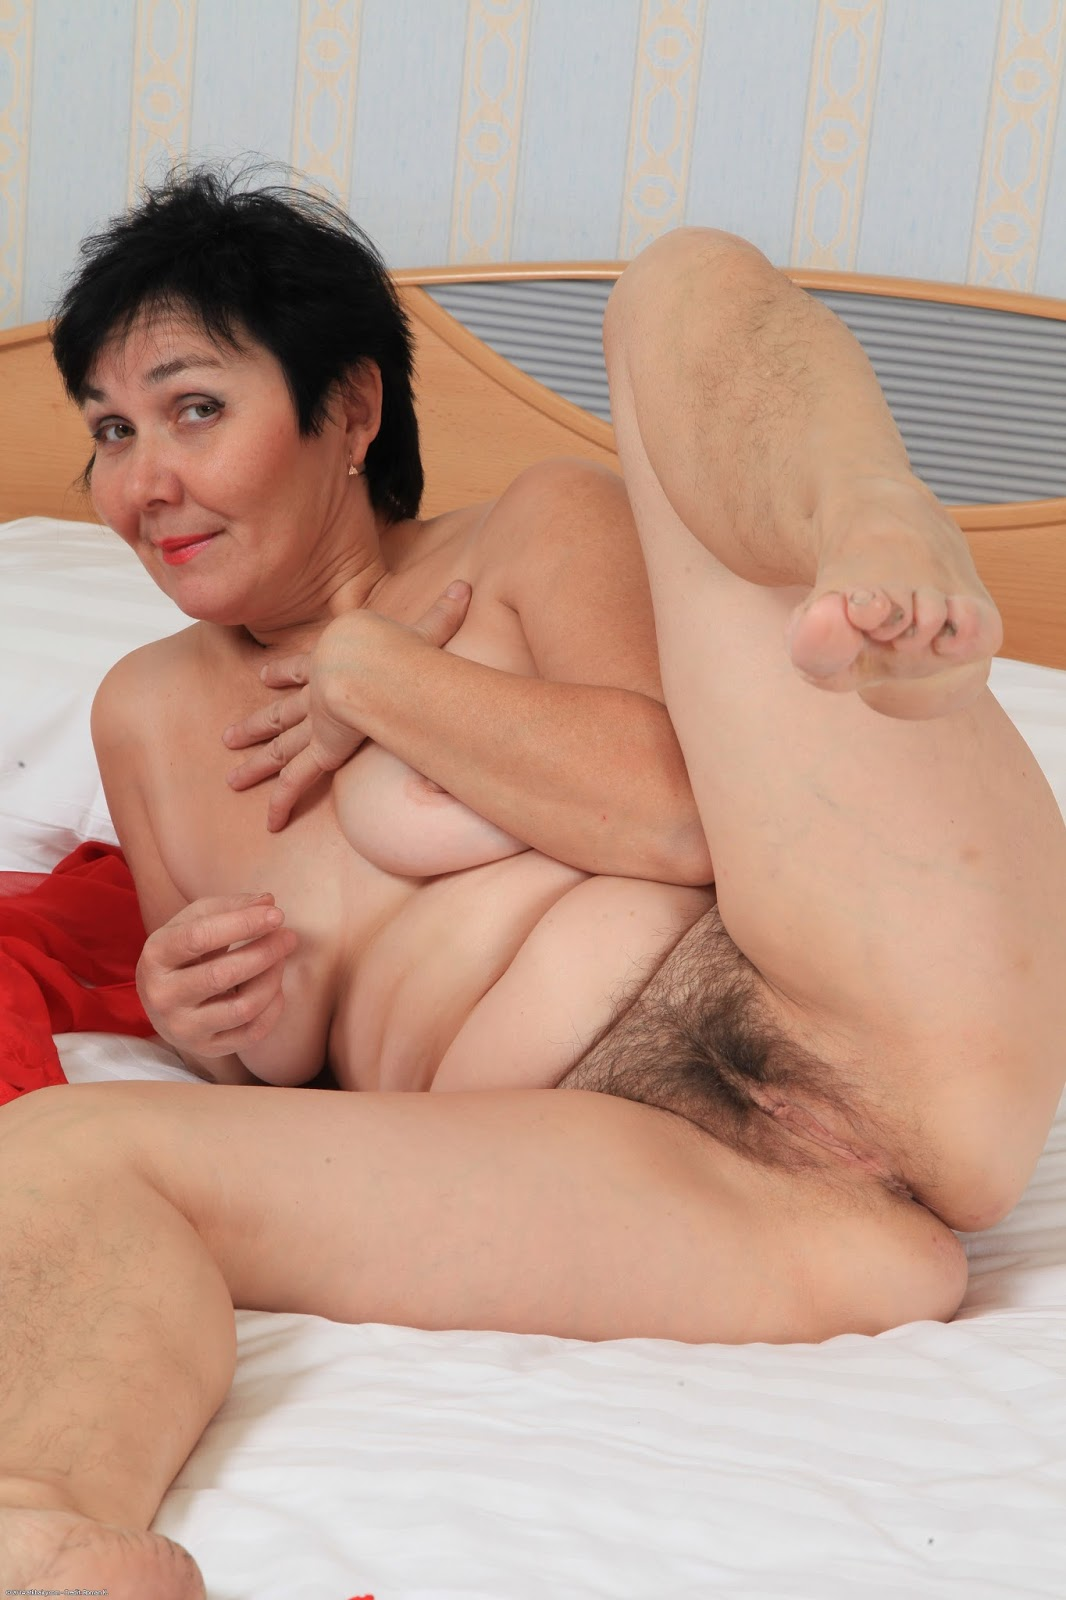 Only mature porn